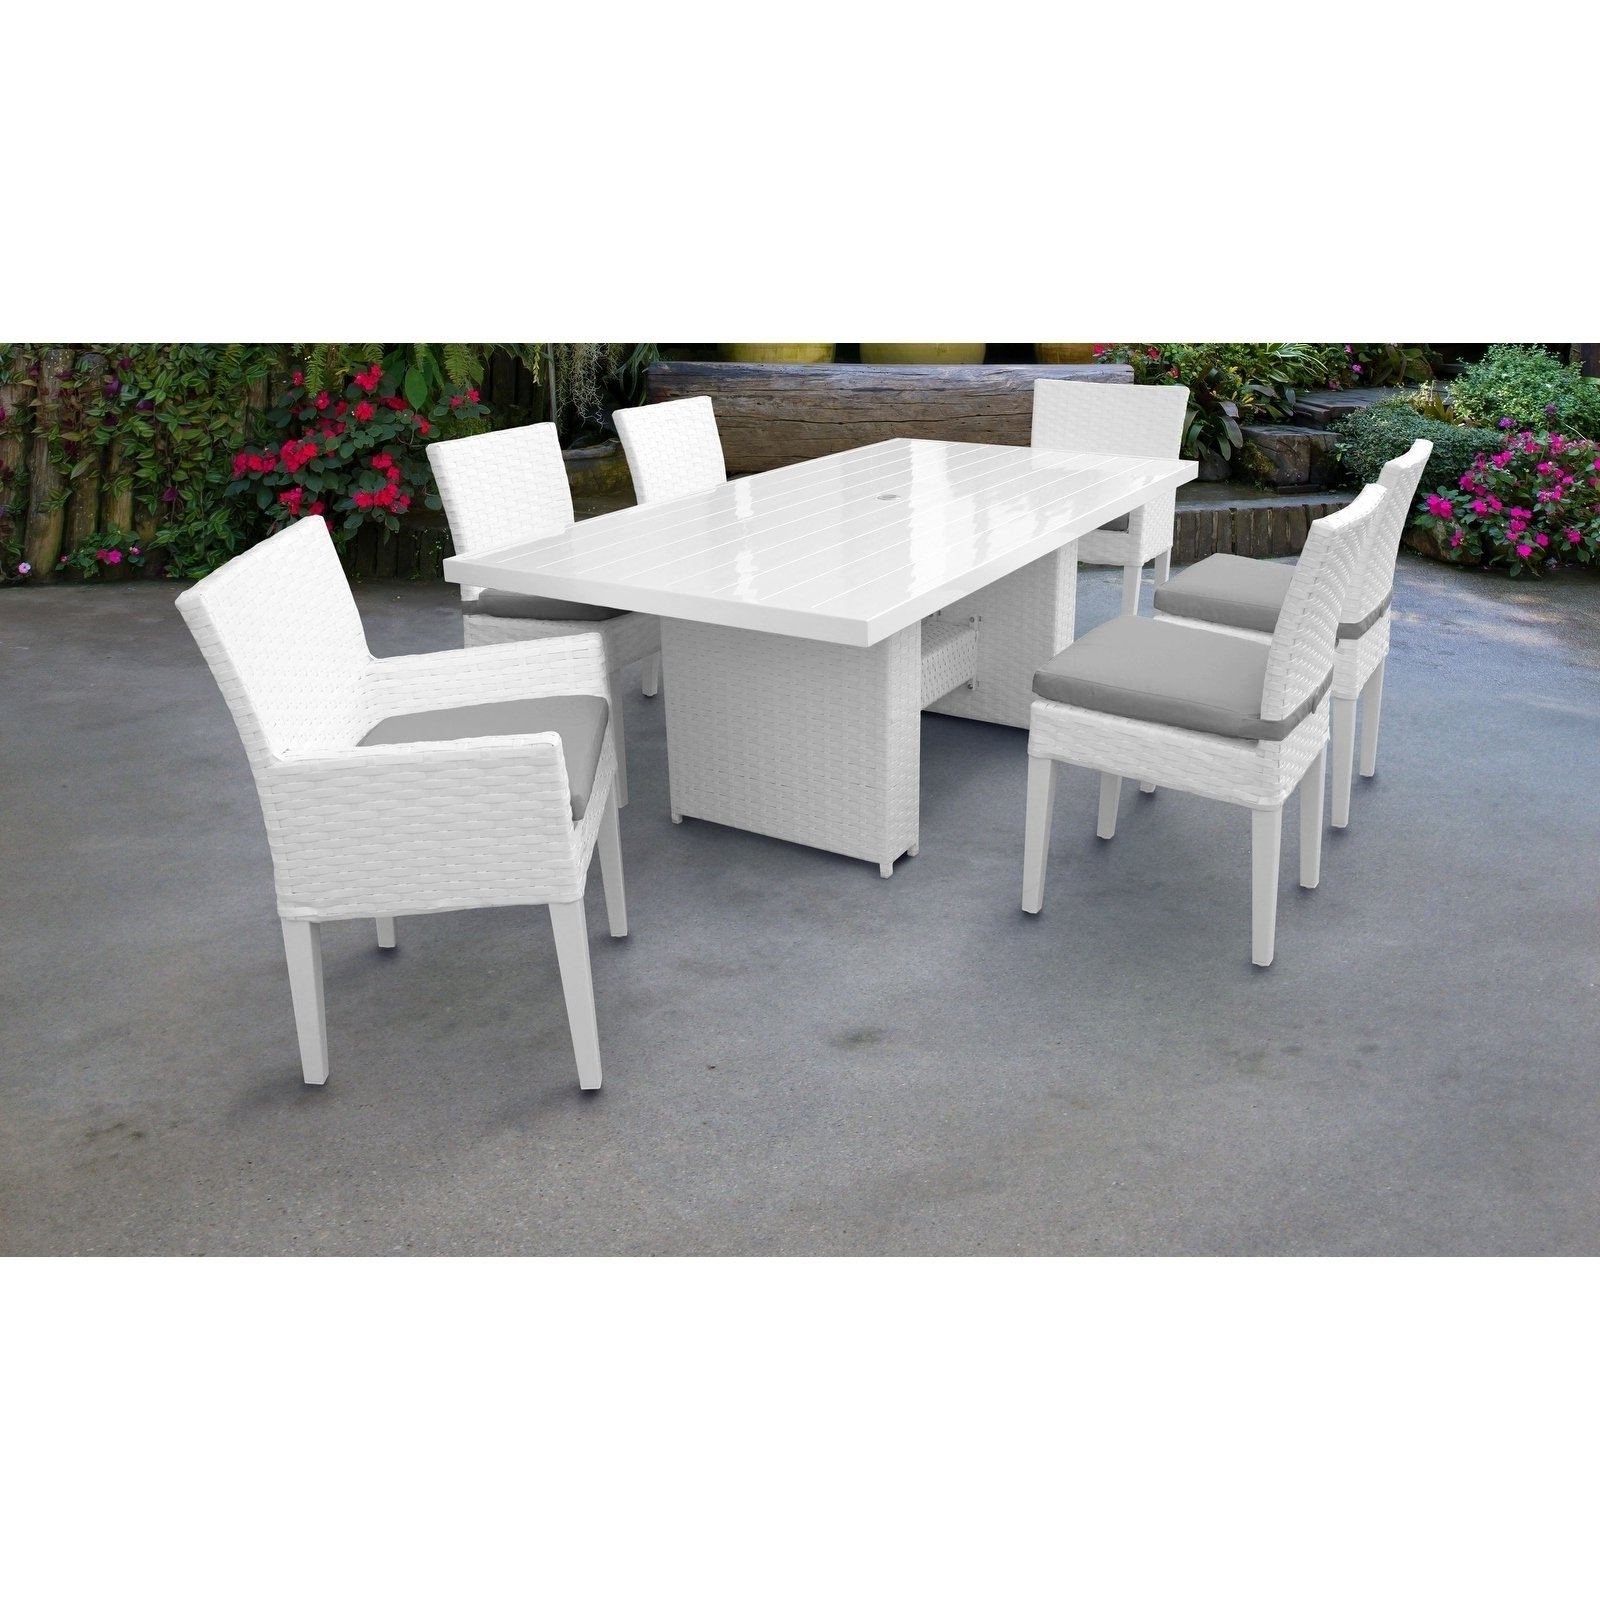 Fashionable Monaco Rectangular Outdoor Patio Dining Table With With 4 Armless In Monaco Dining Tables (View 4 of 25)